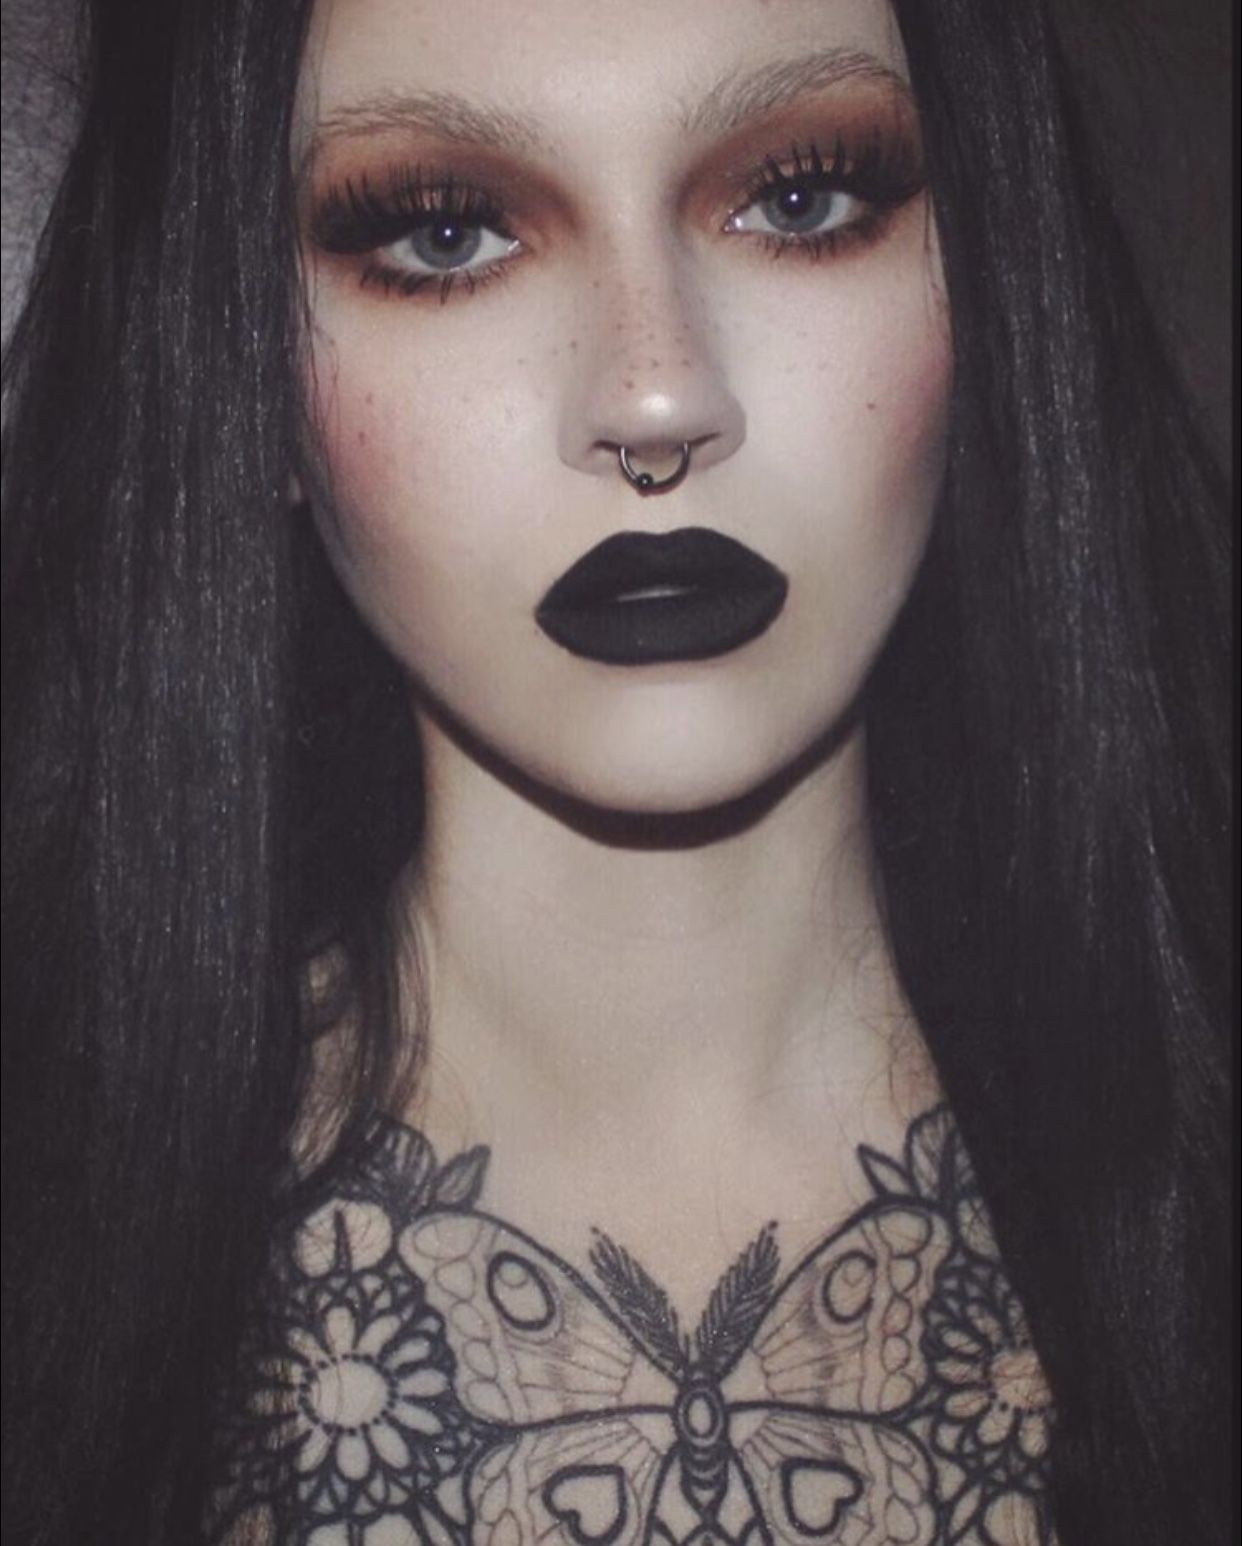 Pin by kimberly brown on Witchy vibez Punk makeup